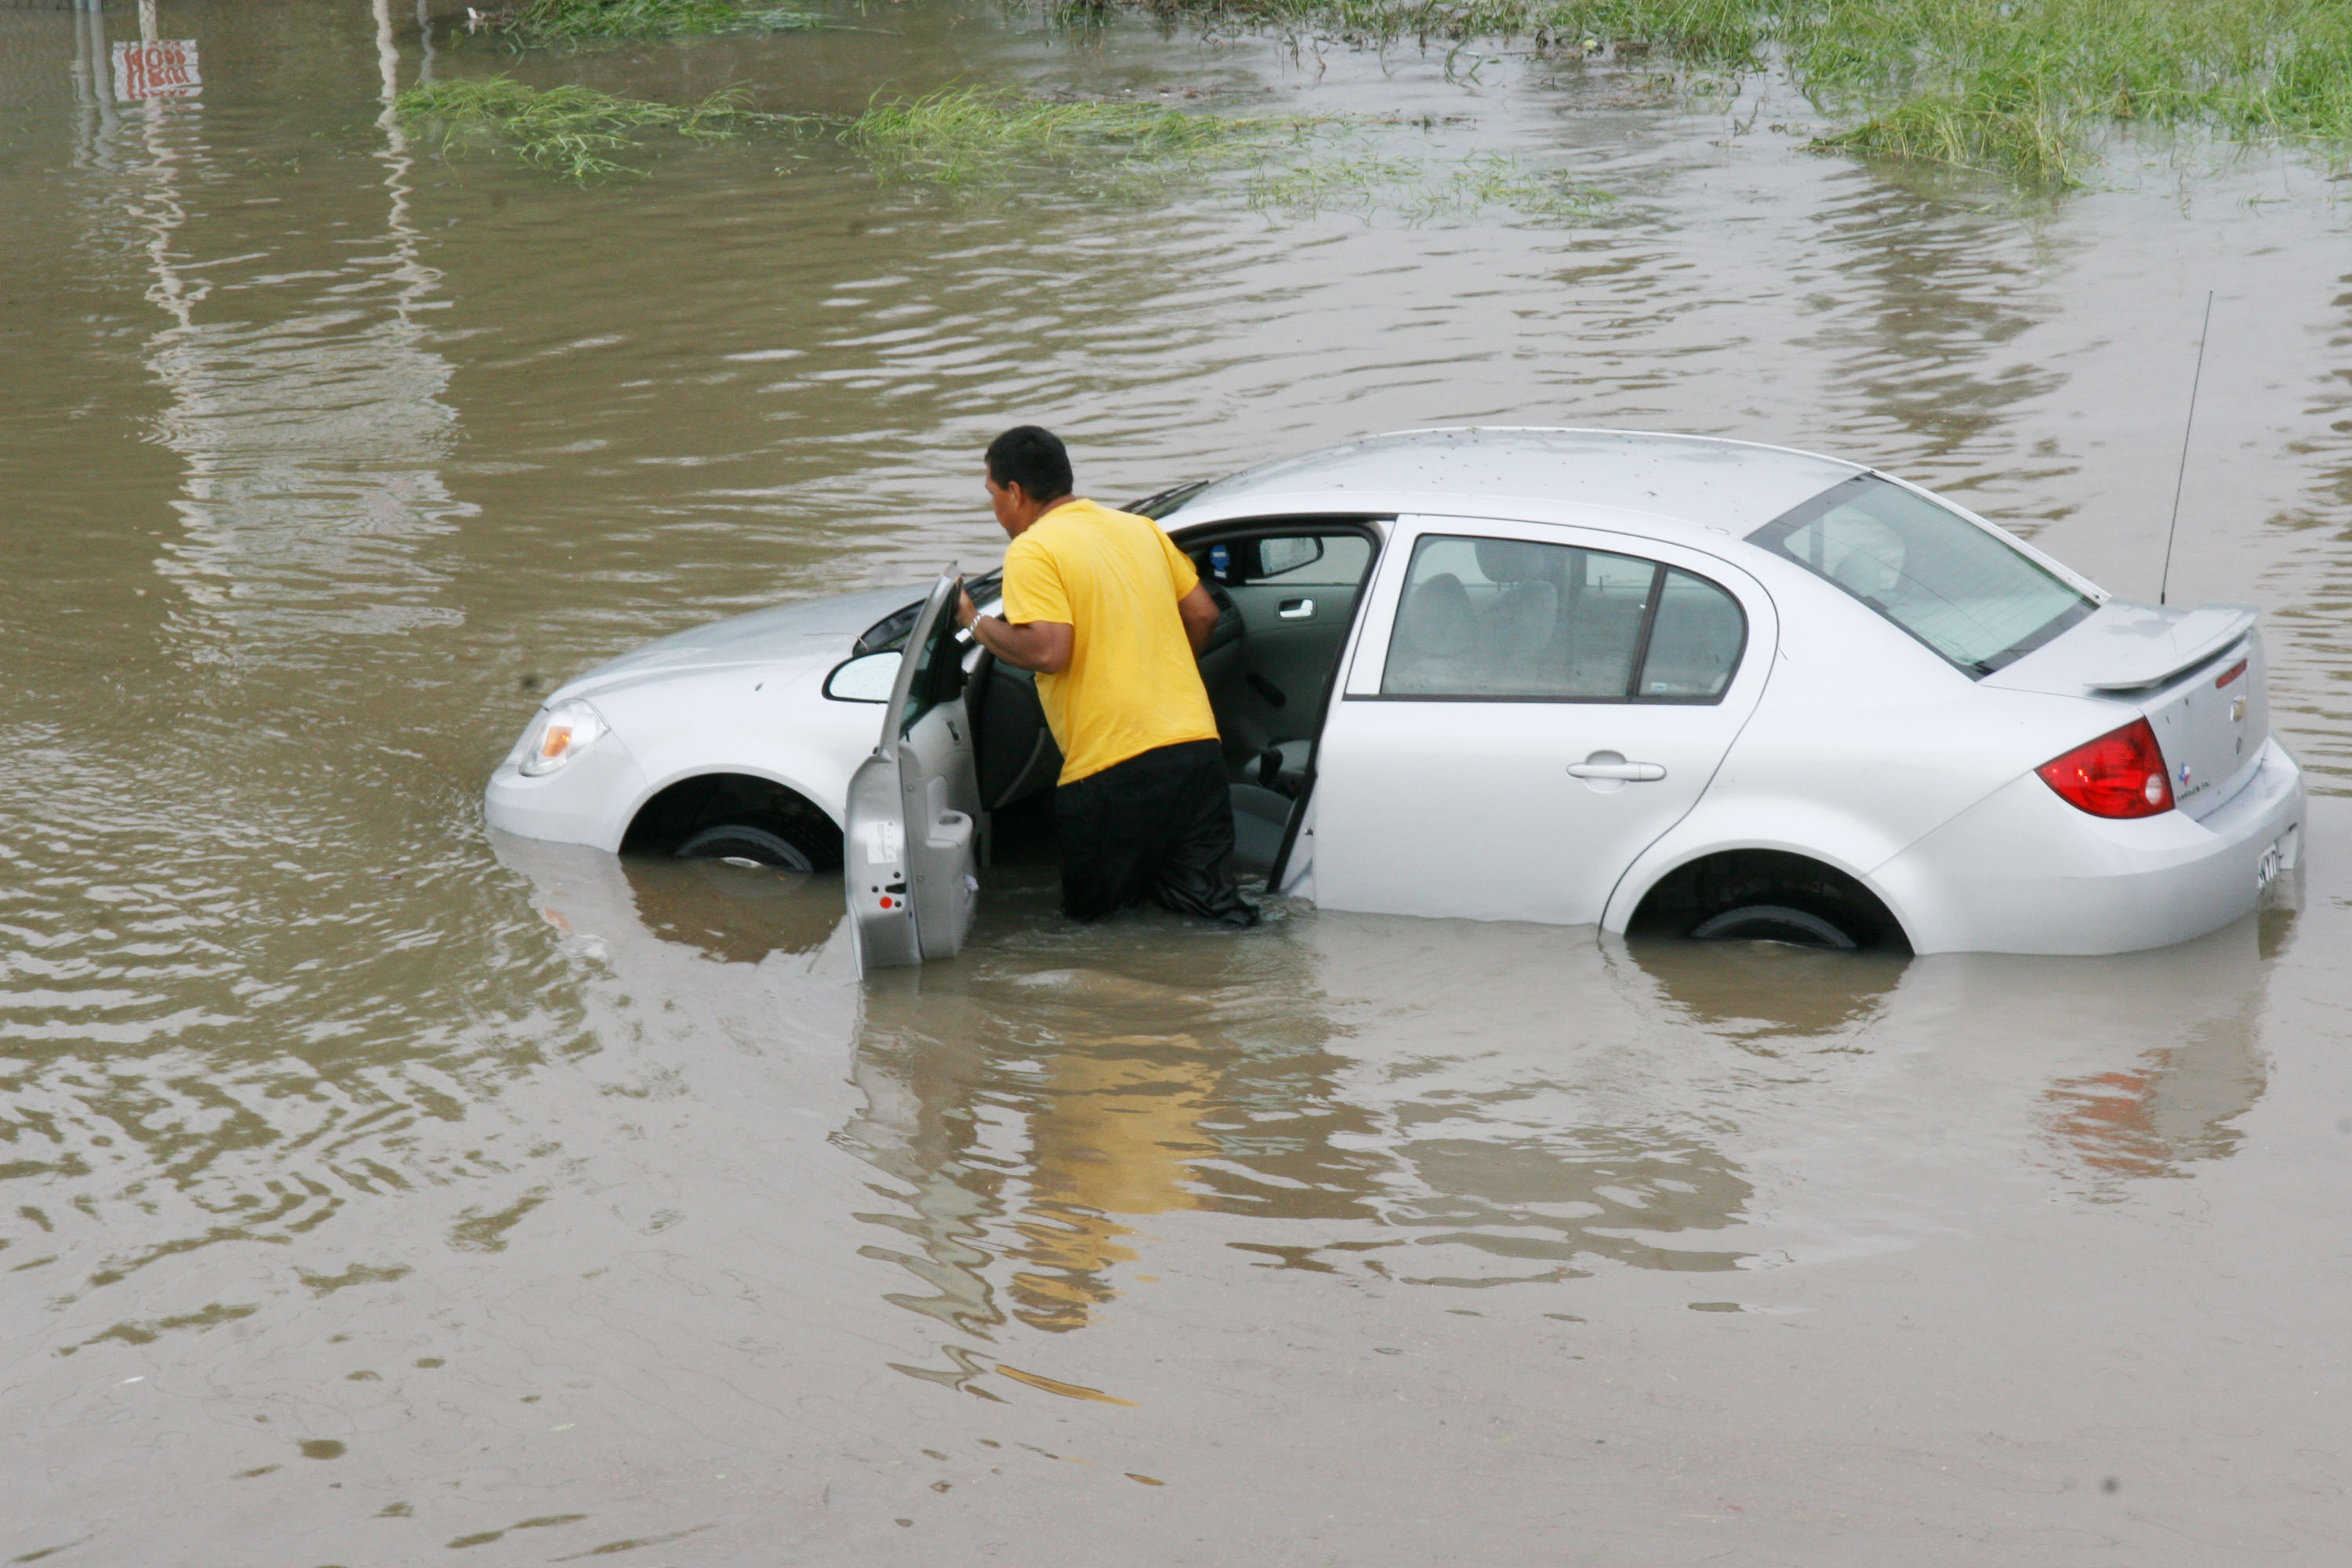 Resale of Flood-Damaged Vehicles on the Rise